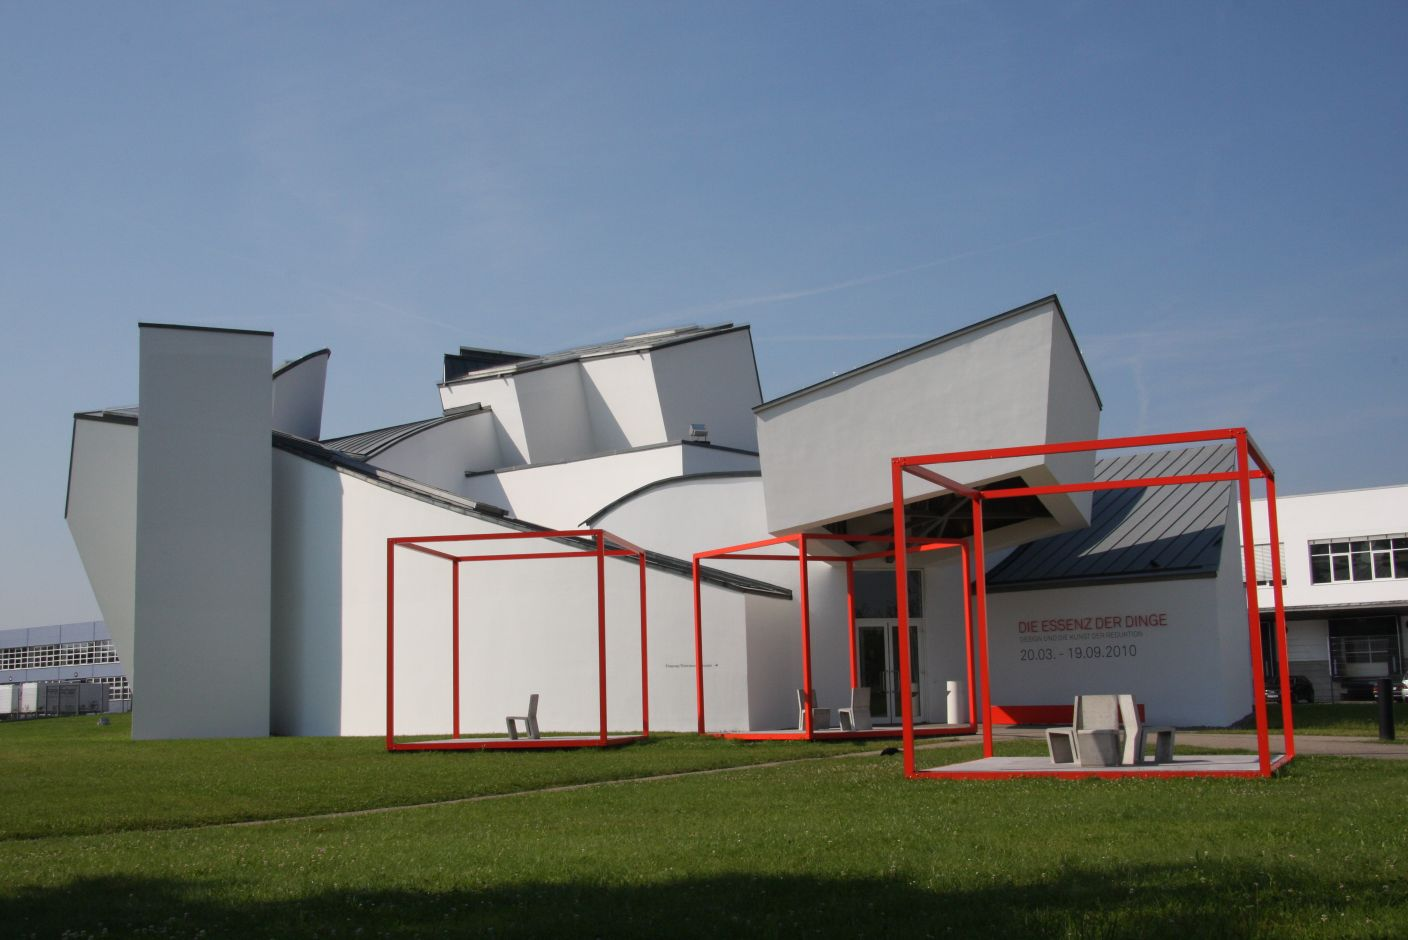 Vitra Design Museum: The Essence of Things. Design and the Art of Reduction